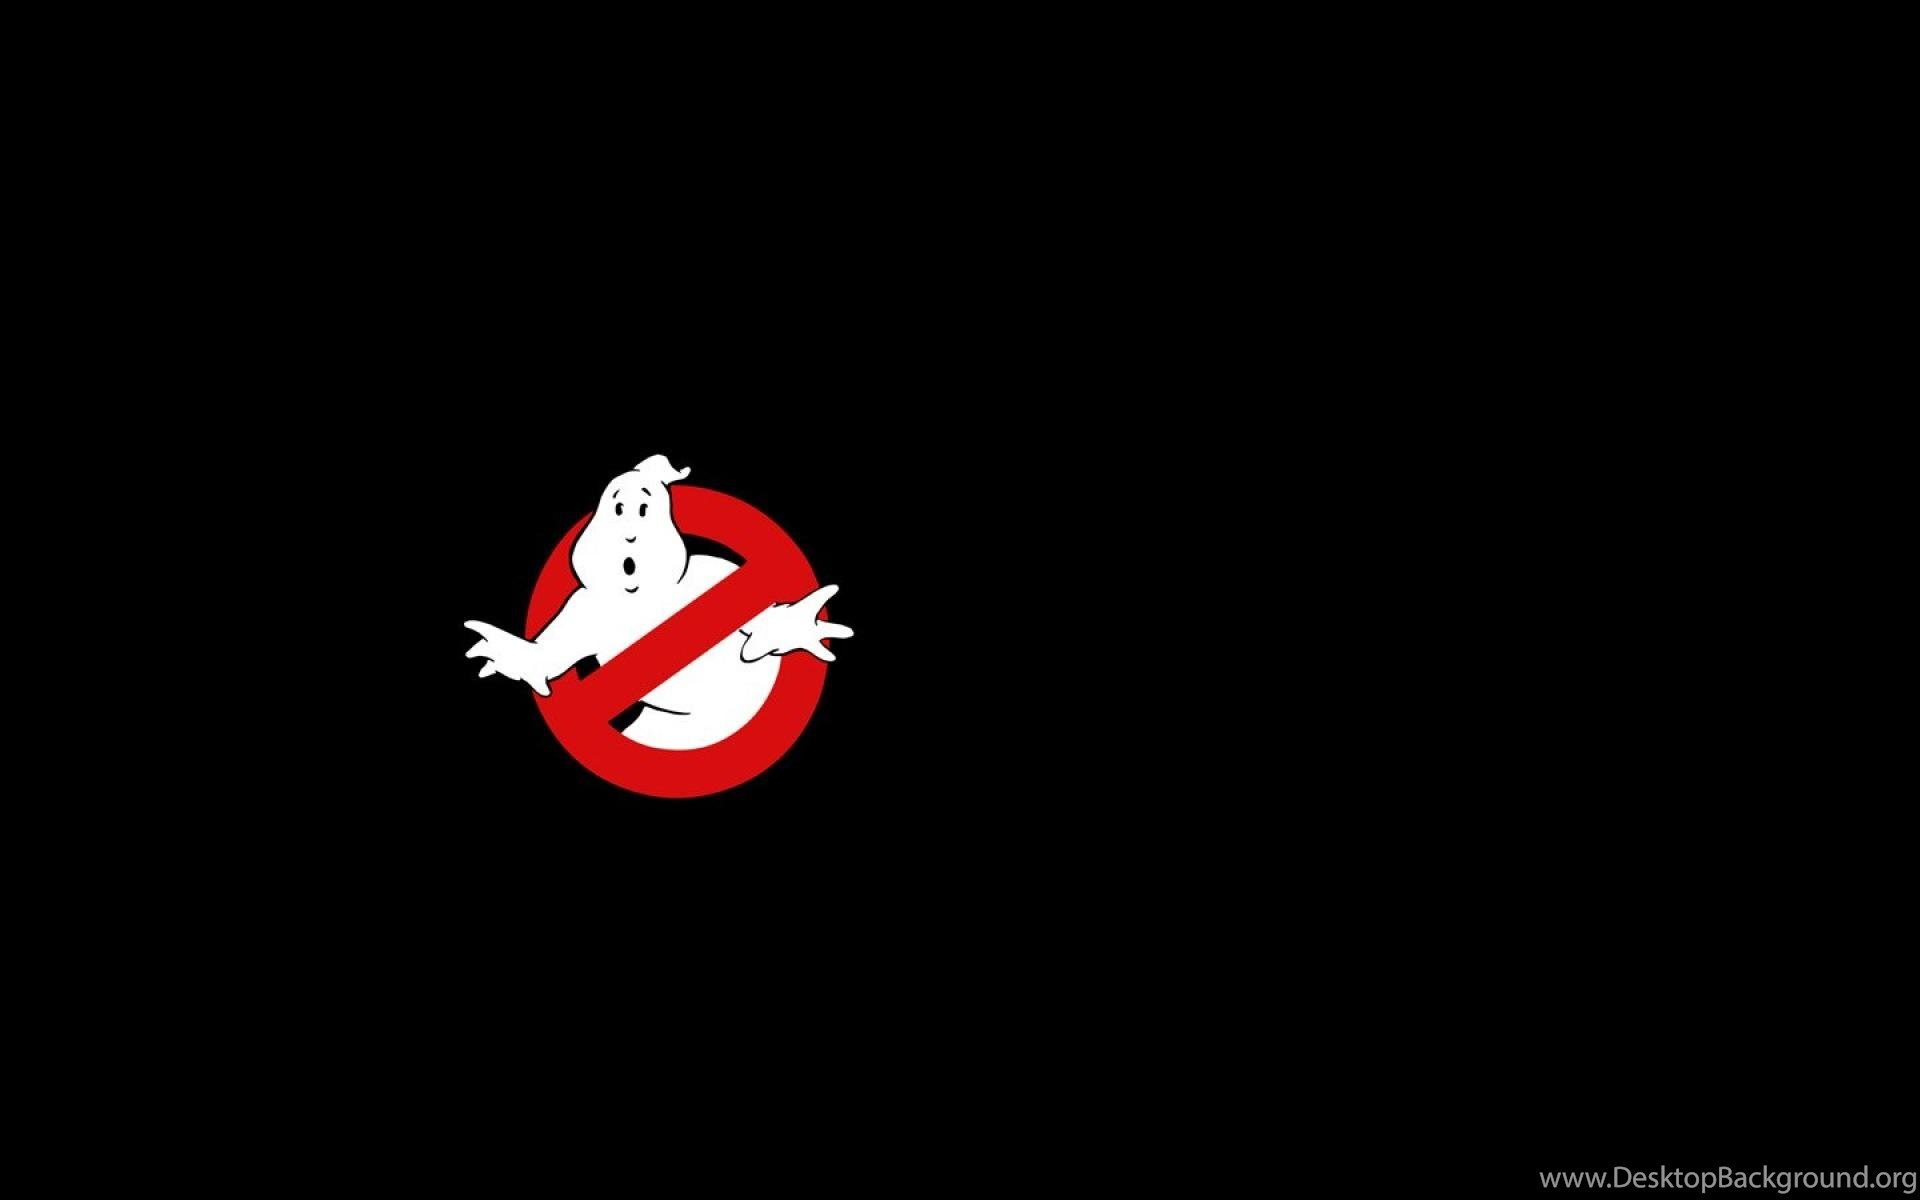 ghostbusters wallpapers wallpapers cave desktop background